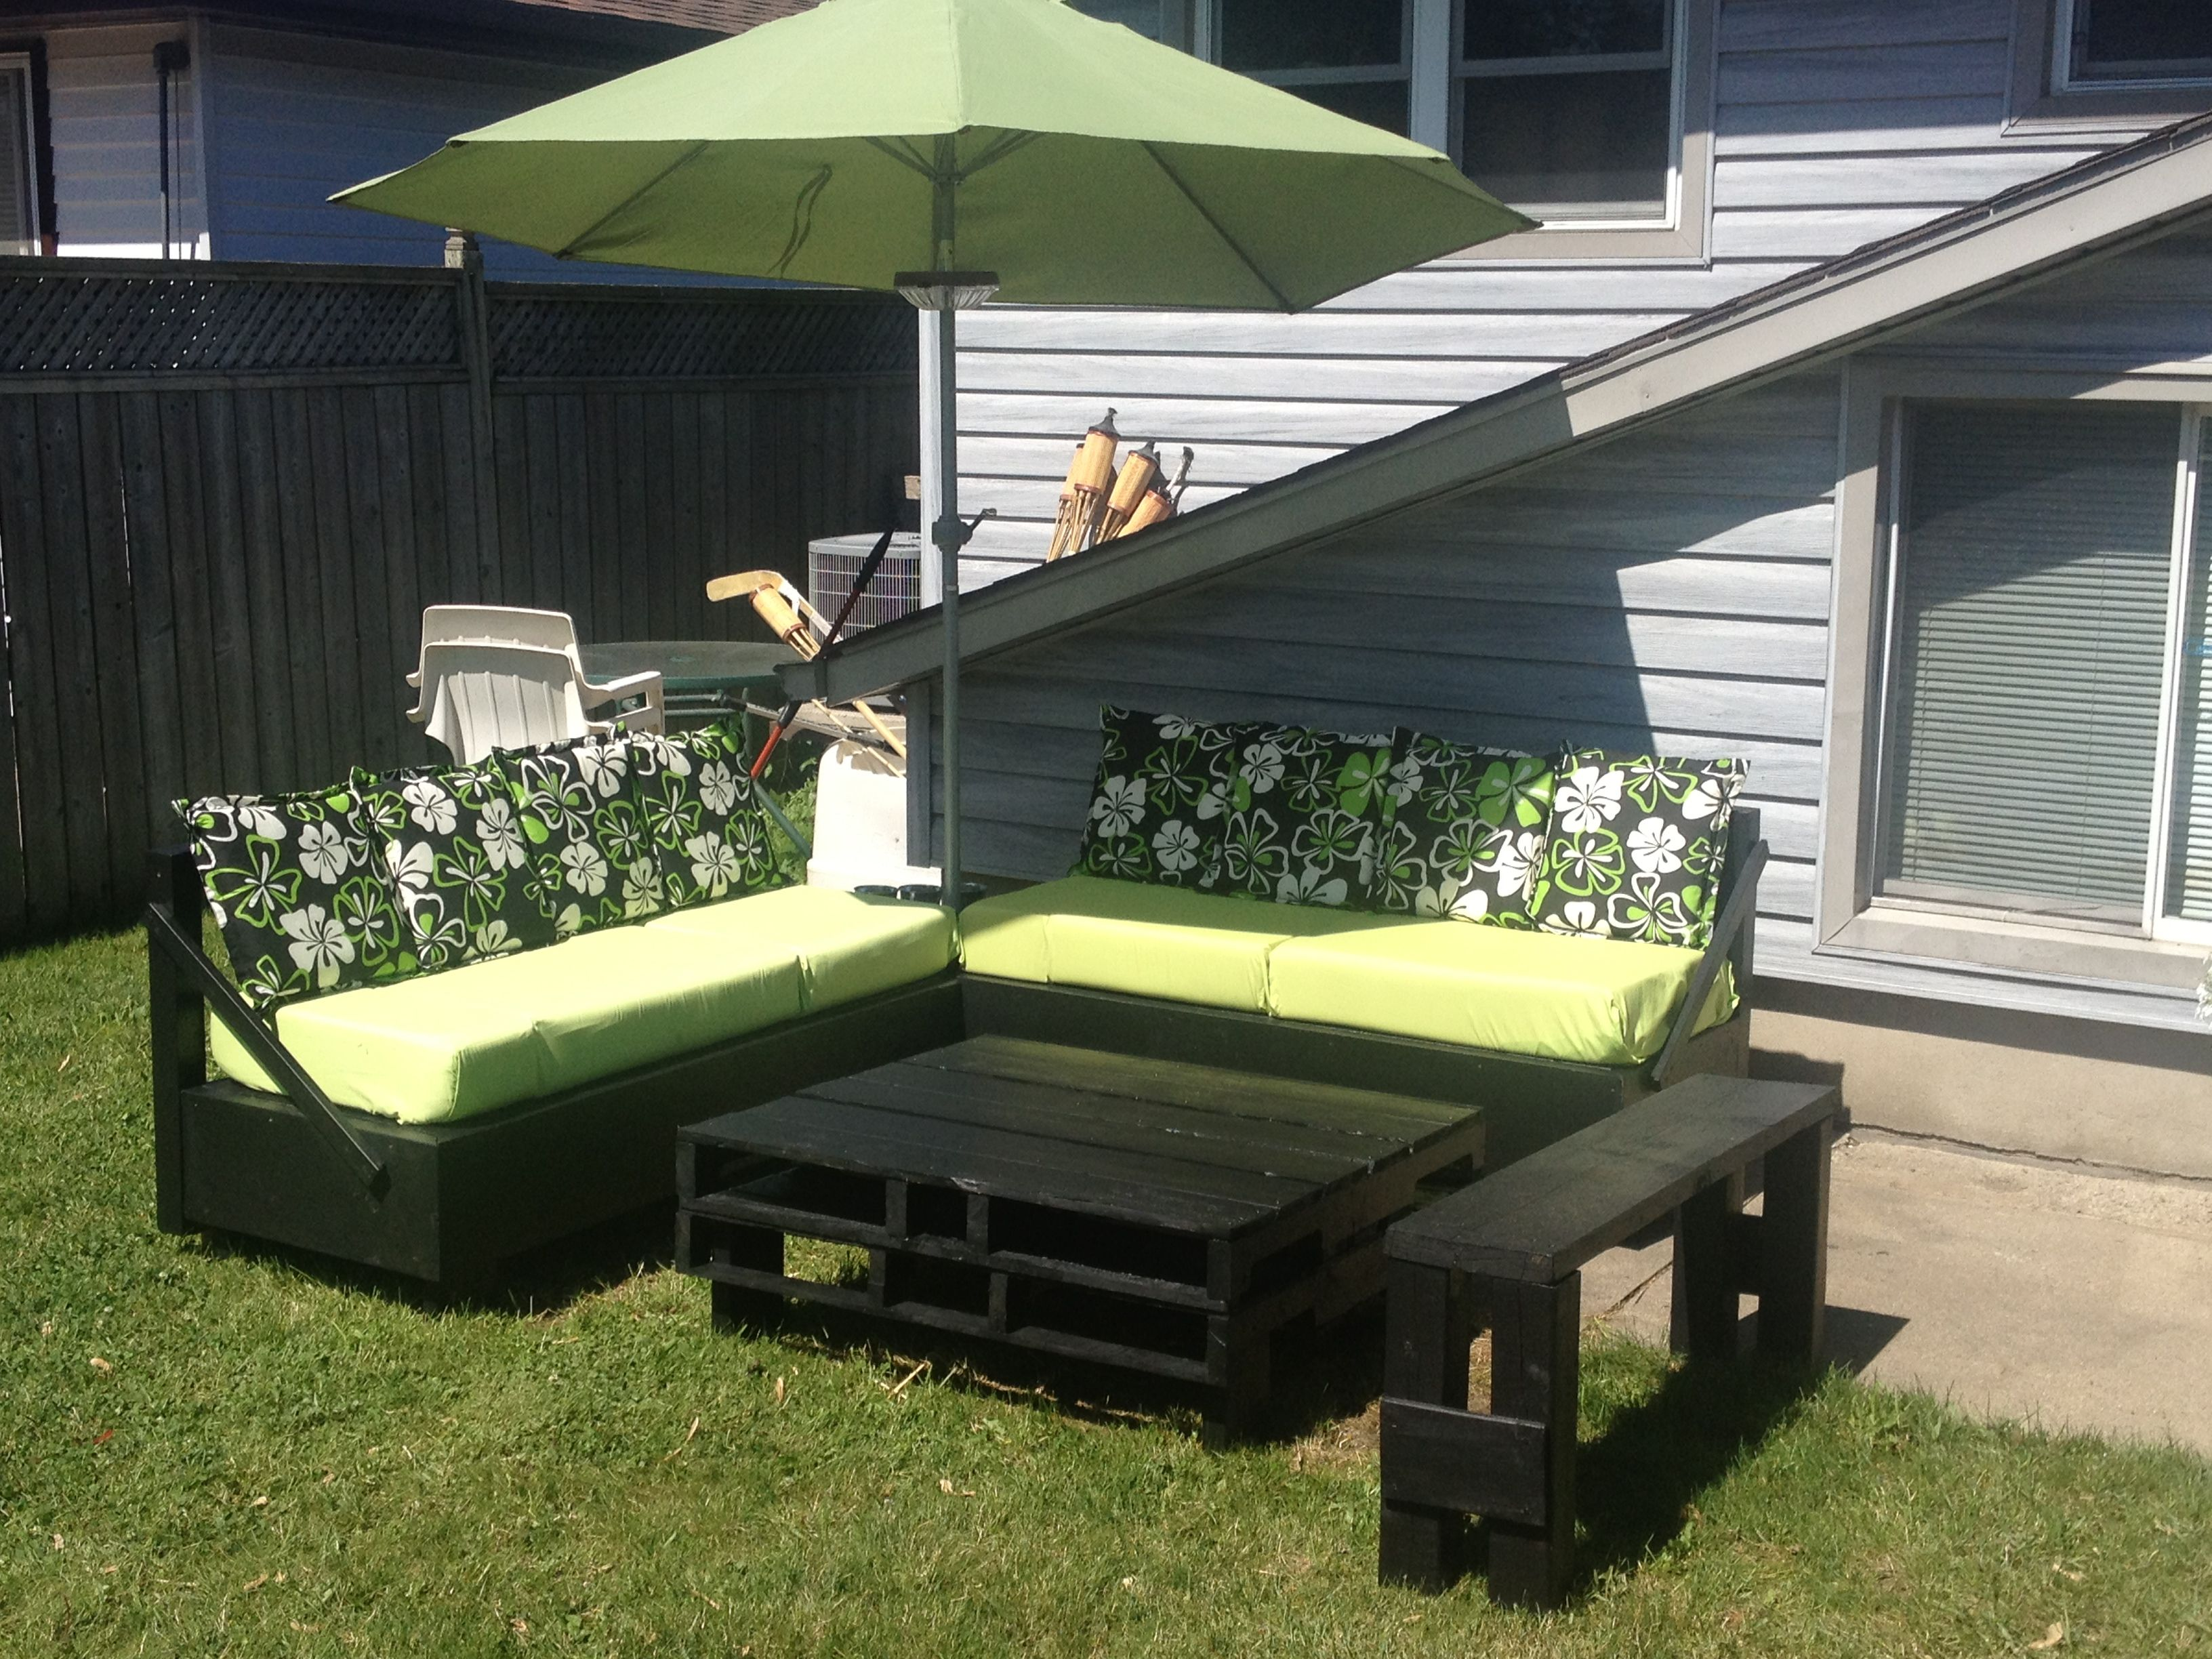 Homemade Patio Furniture My Husband And I Made. A Lot Of Work, But Well  Worth It.